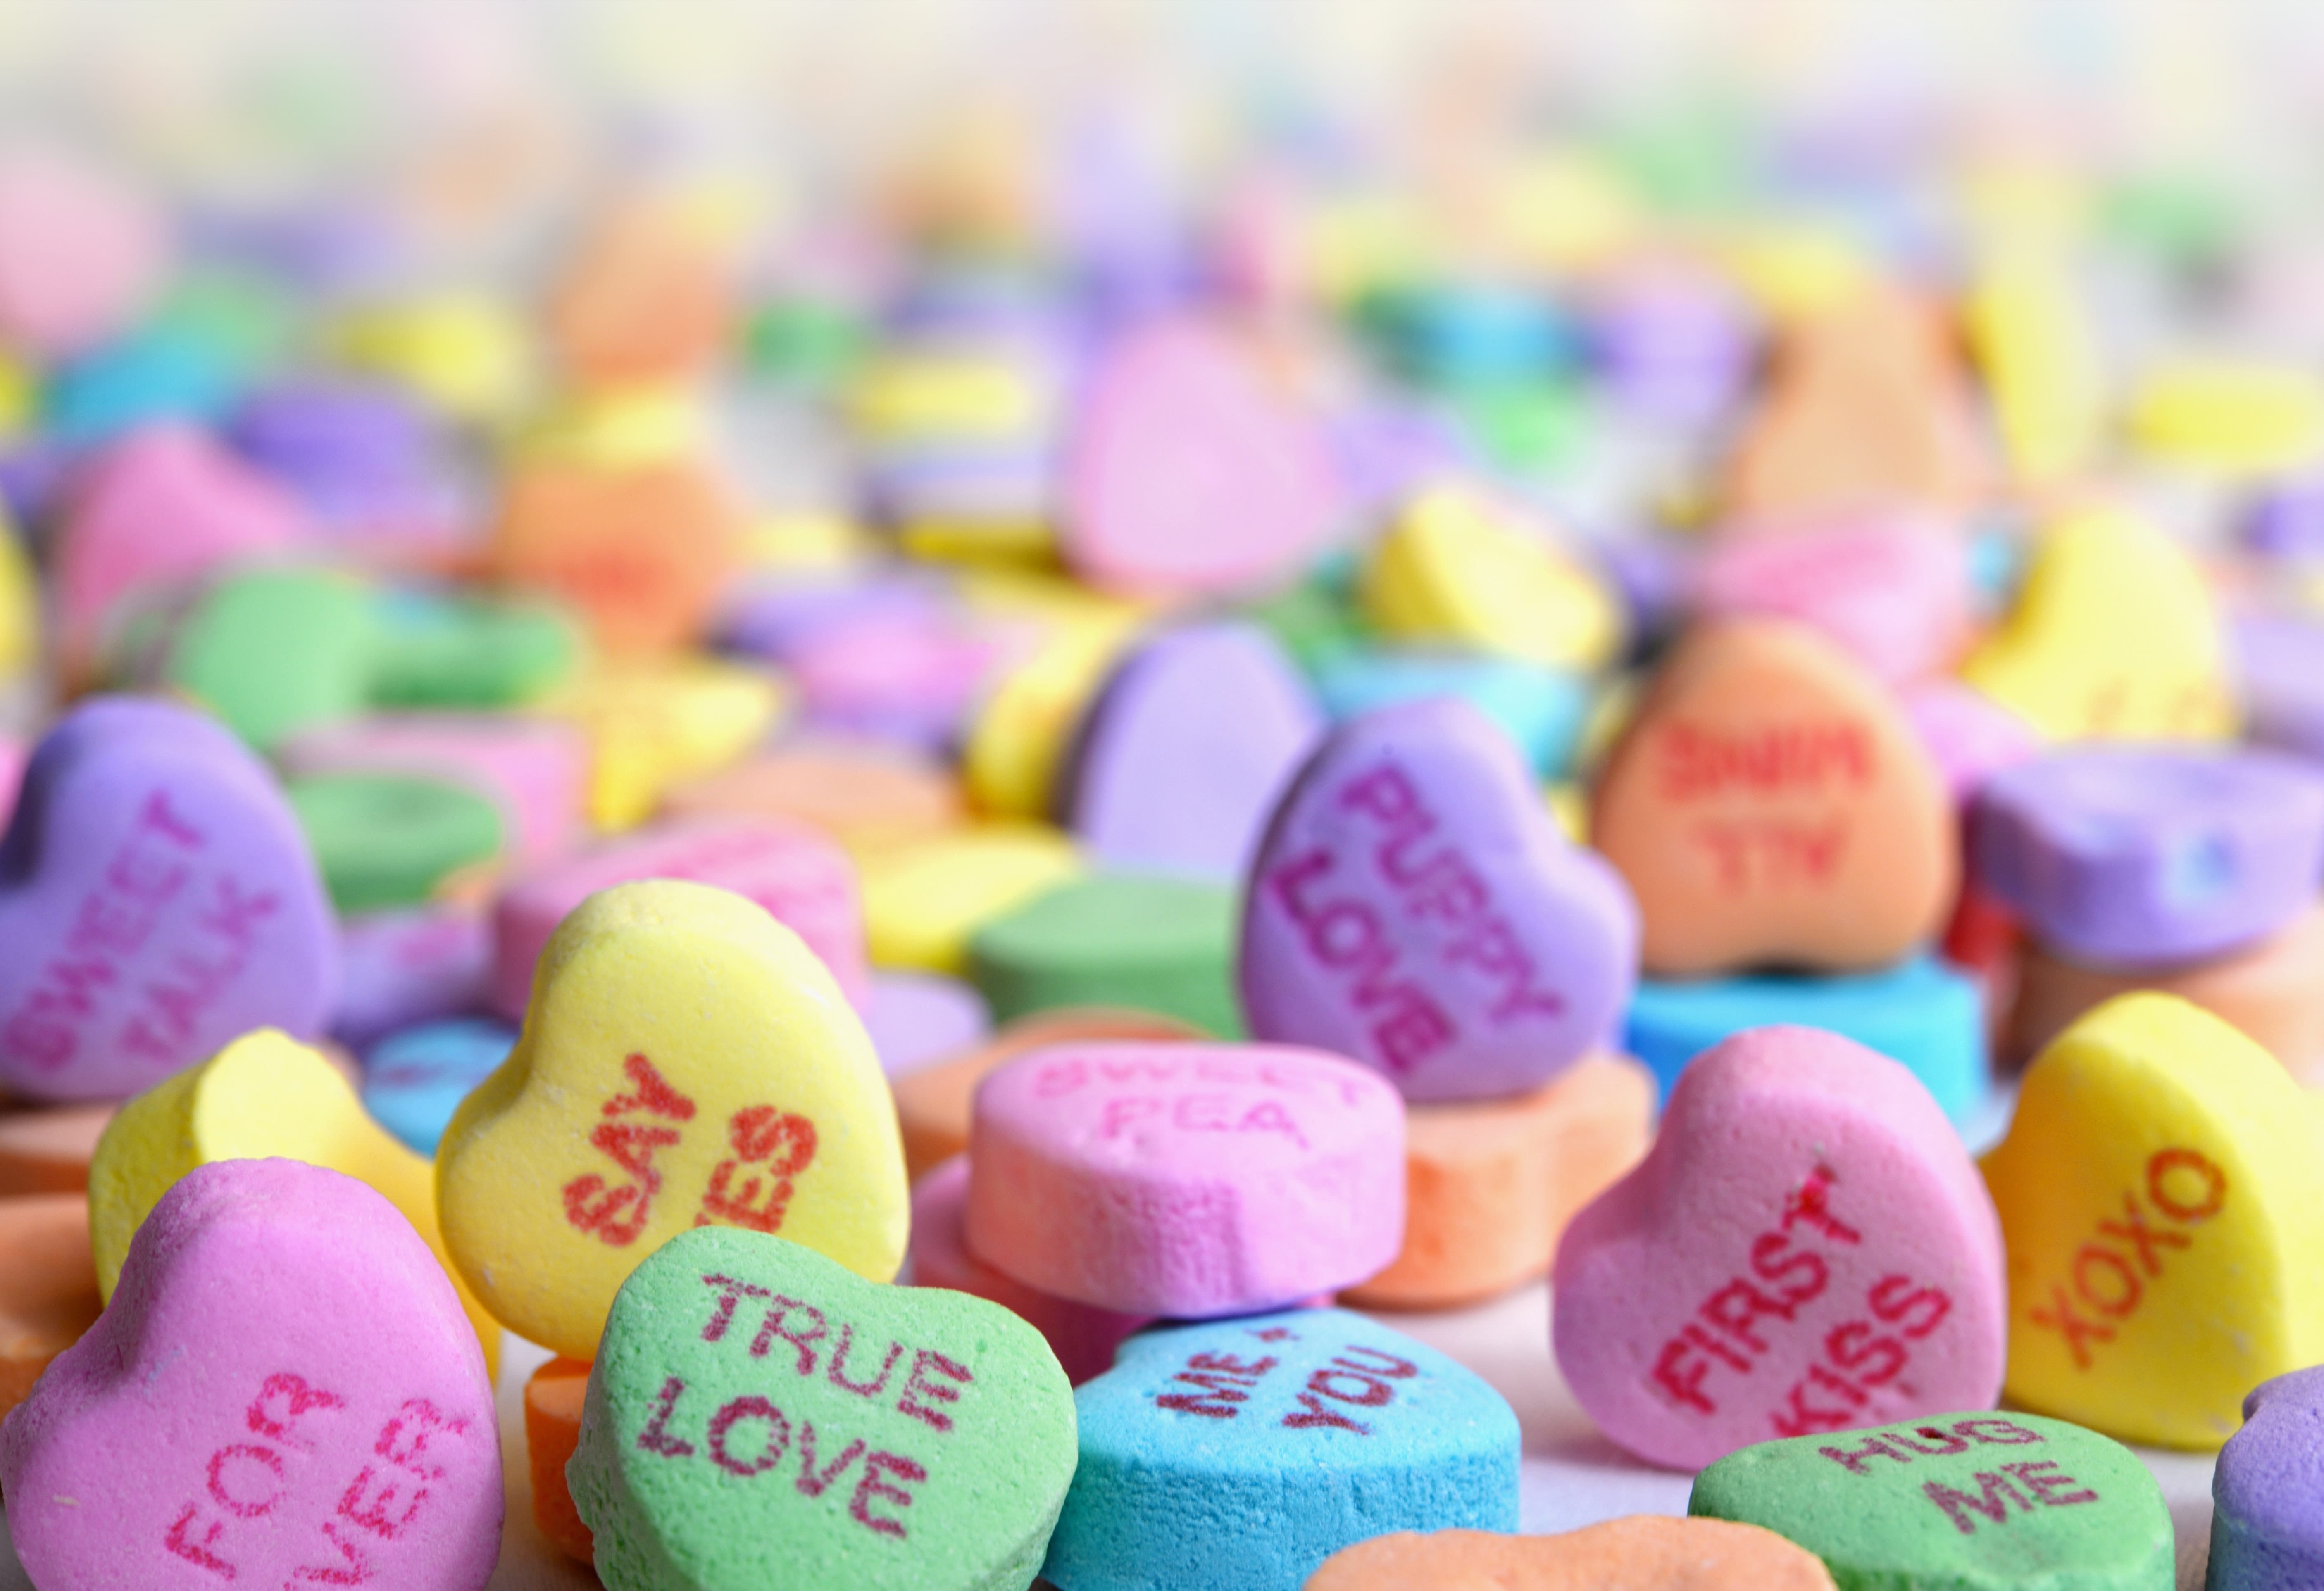 5 Reasons Cleaning Services Could Be the Perfect Valentine's Day Gift